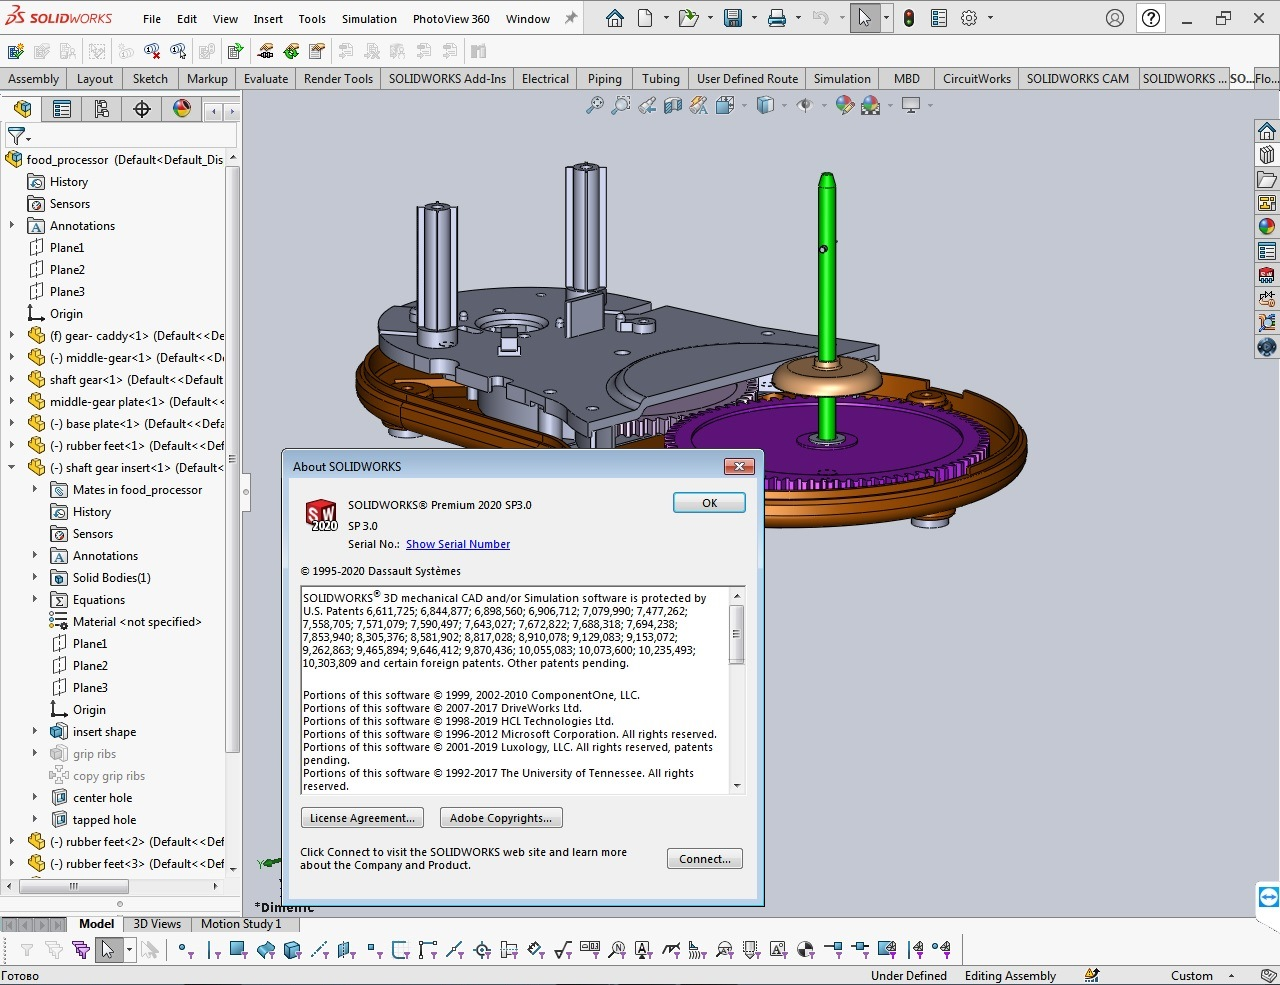 Working with SolidWorks 2020 SP3.0 full license